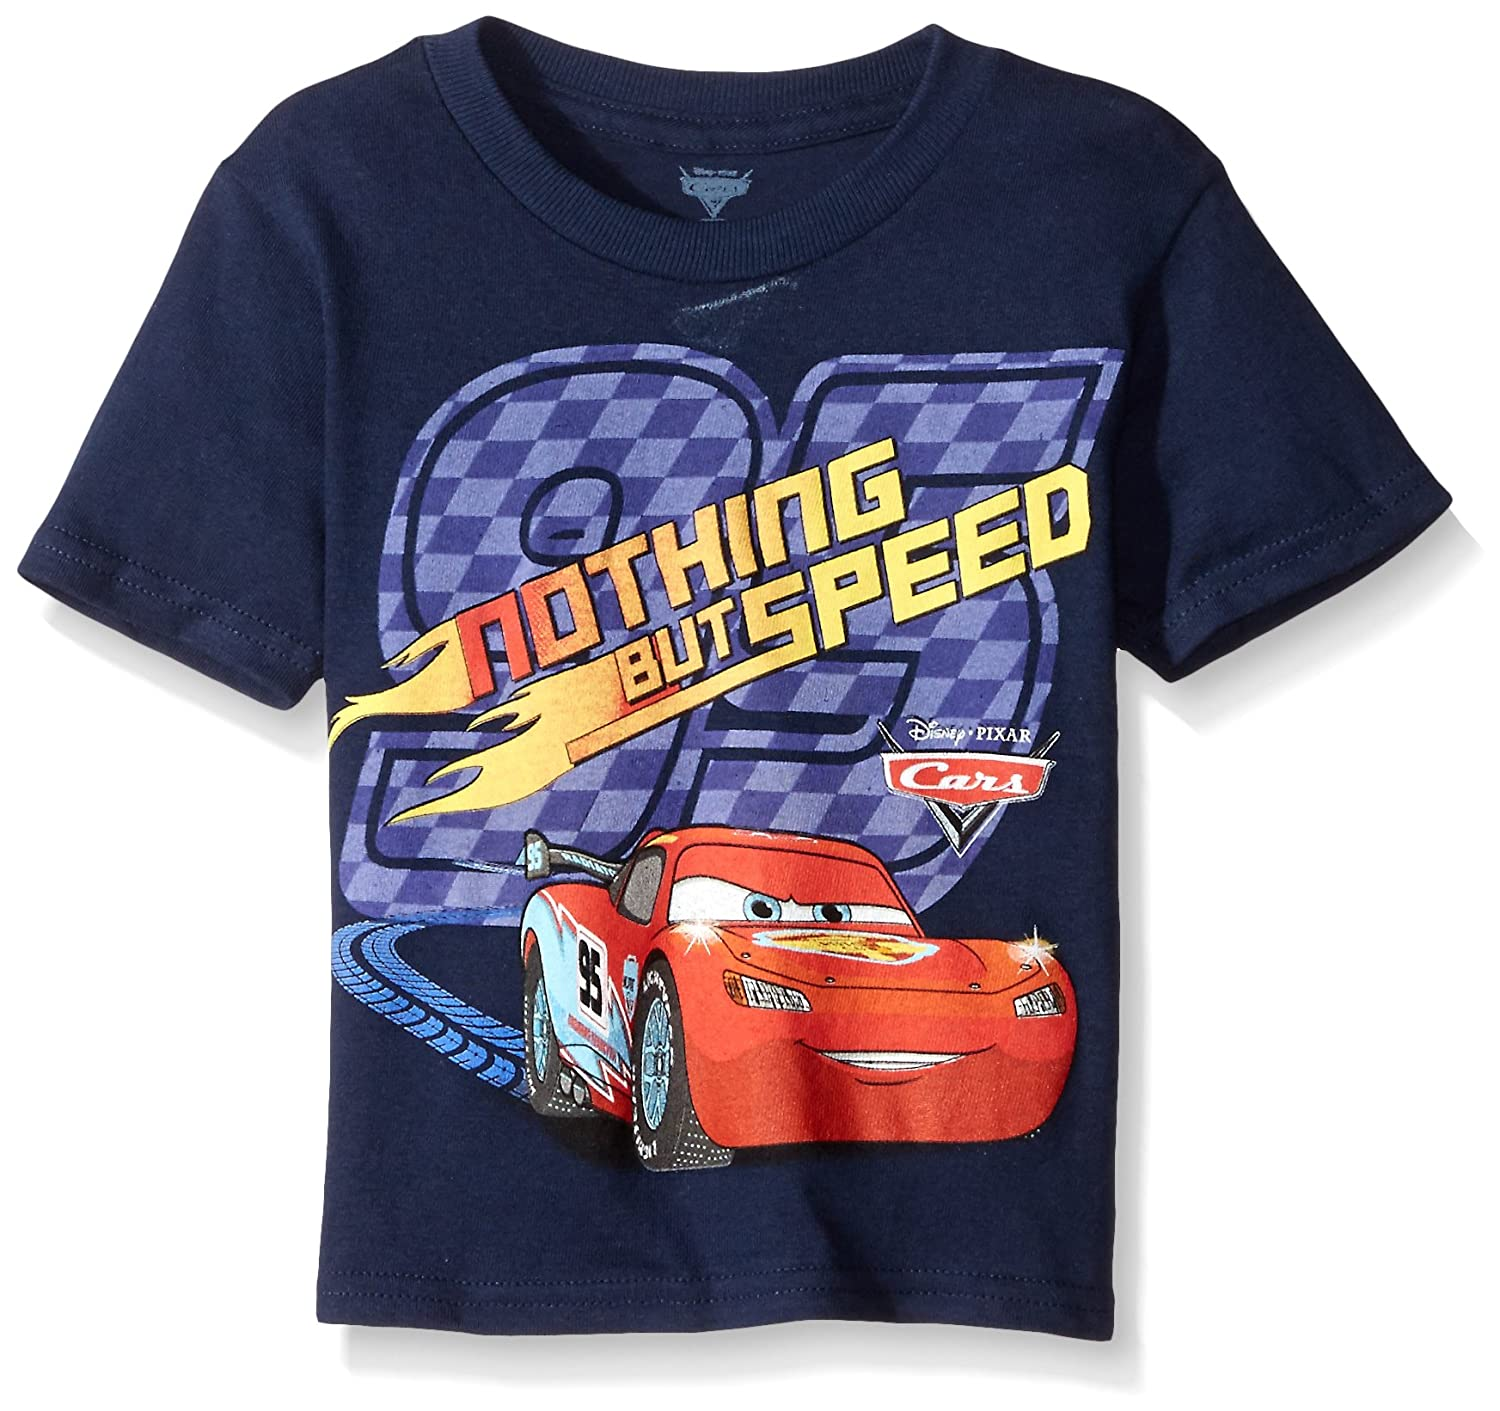 Disney Baby Boys' Cars Nothing But Speed Short Sleeve Tee Freeze Children' s Apparel CZSB111-02T